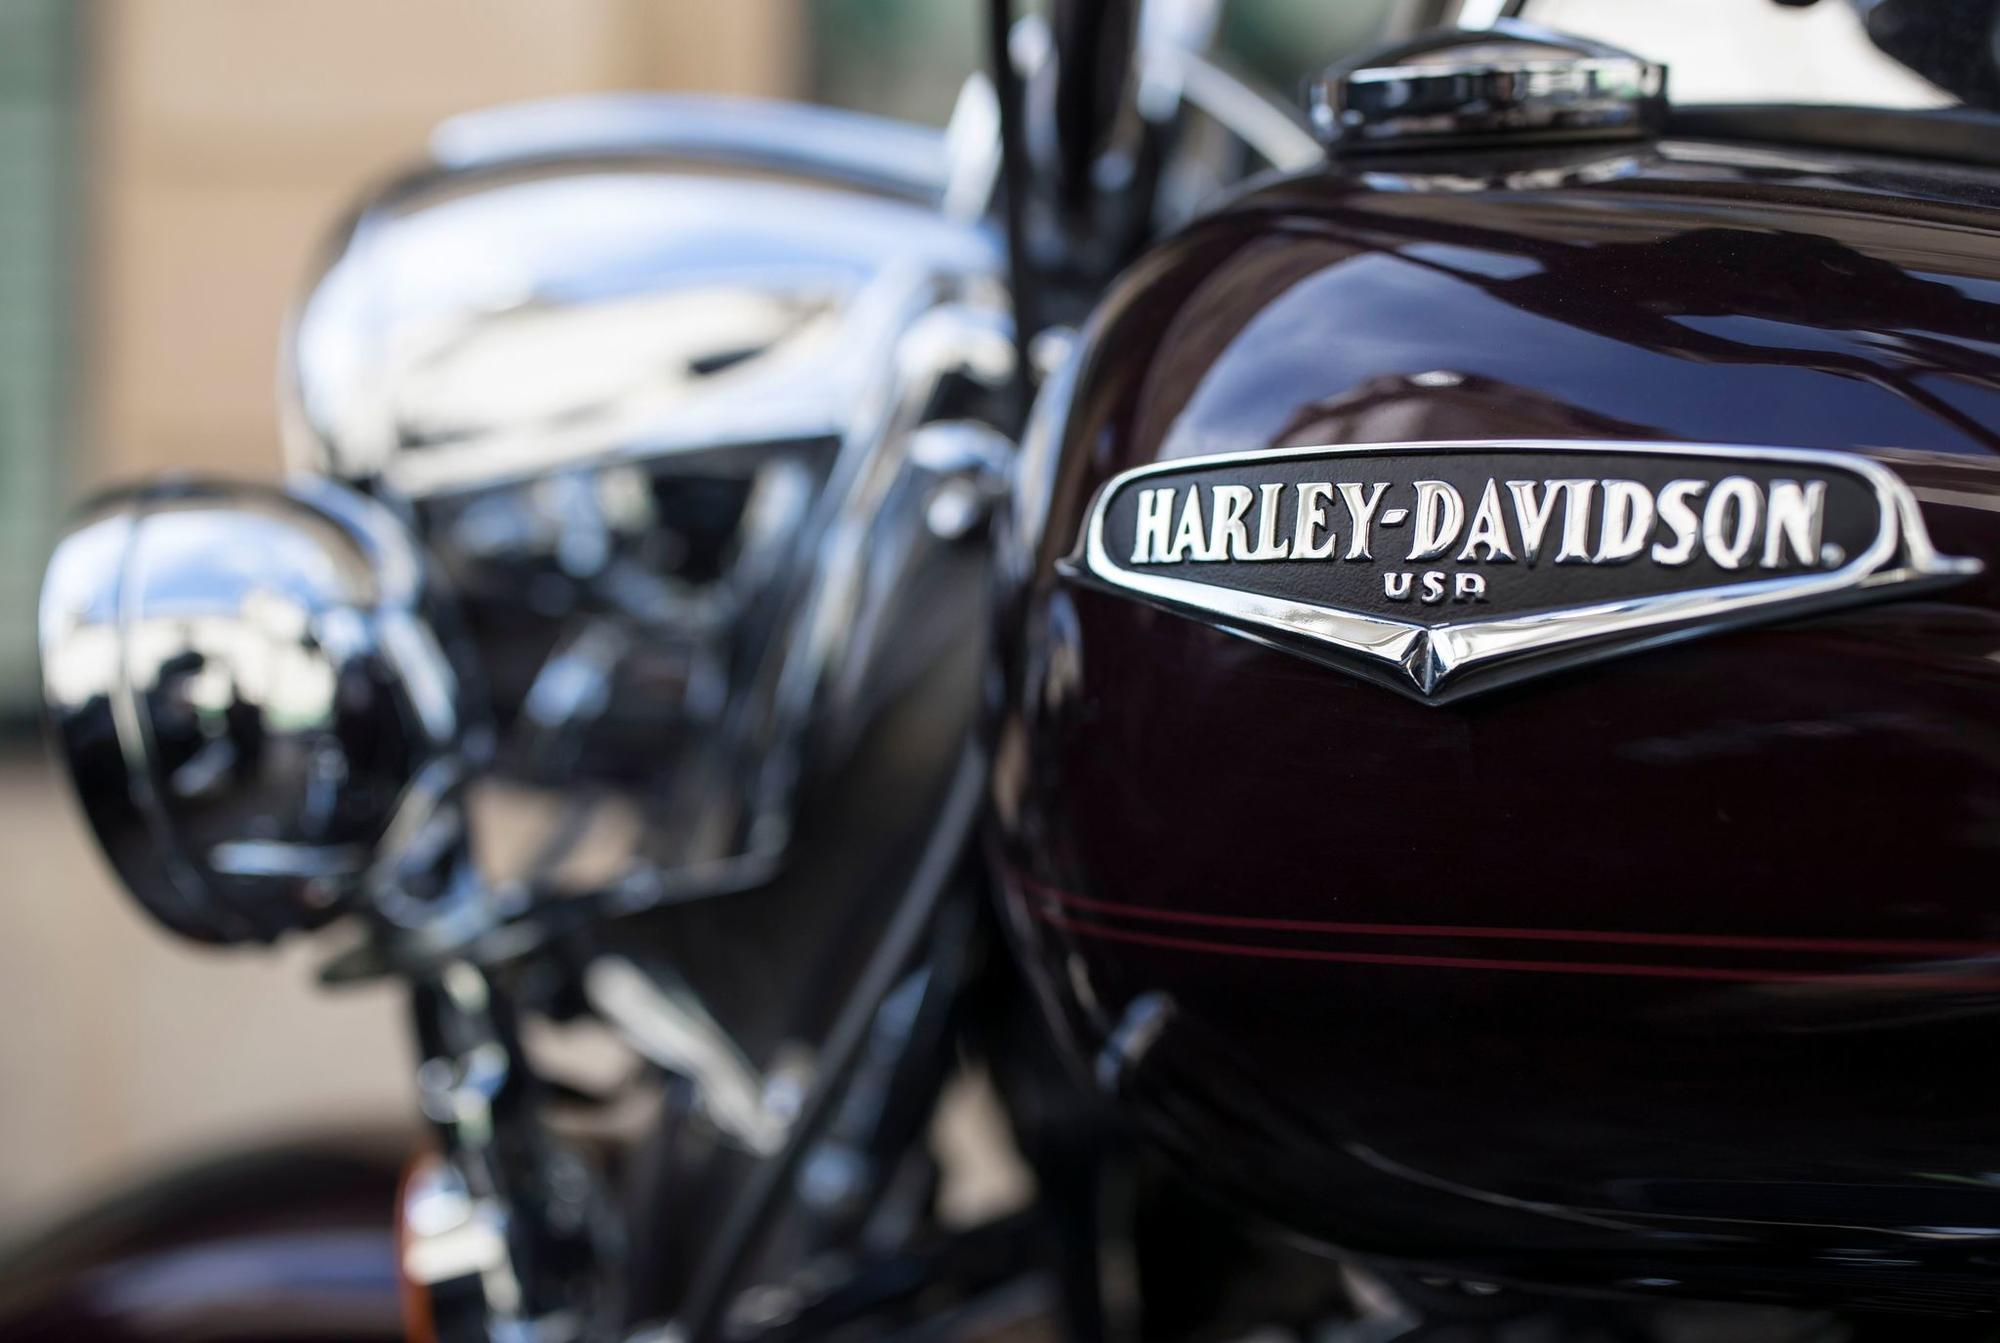 Machinists Call Out Harley's Outsourcing Blame Game